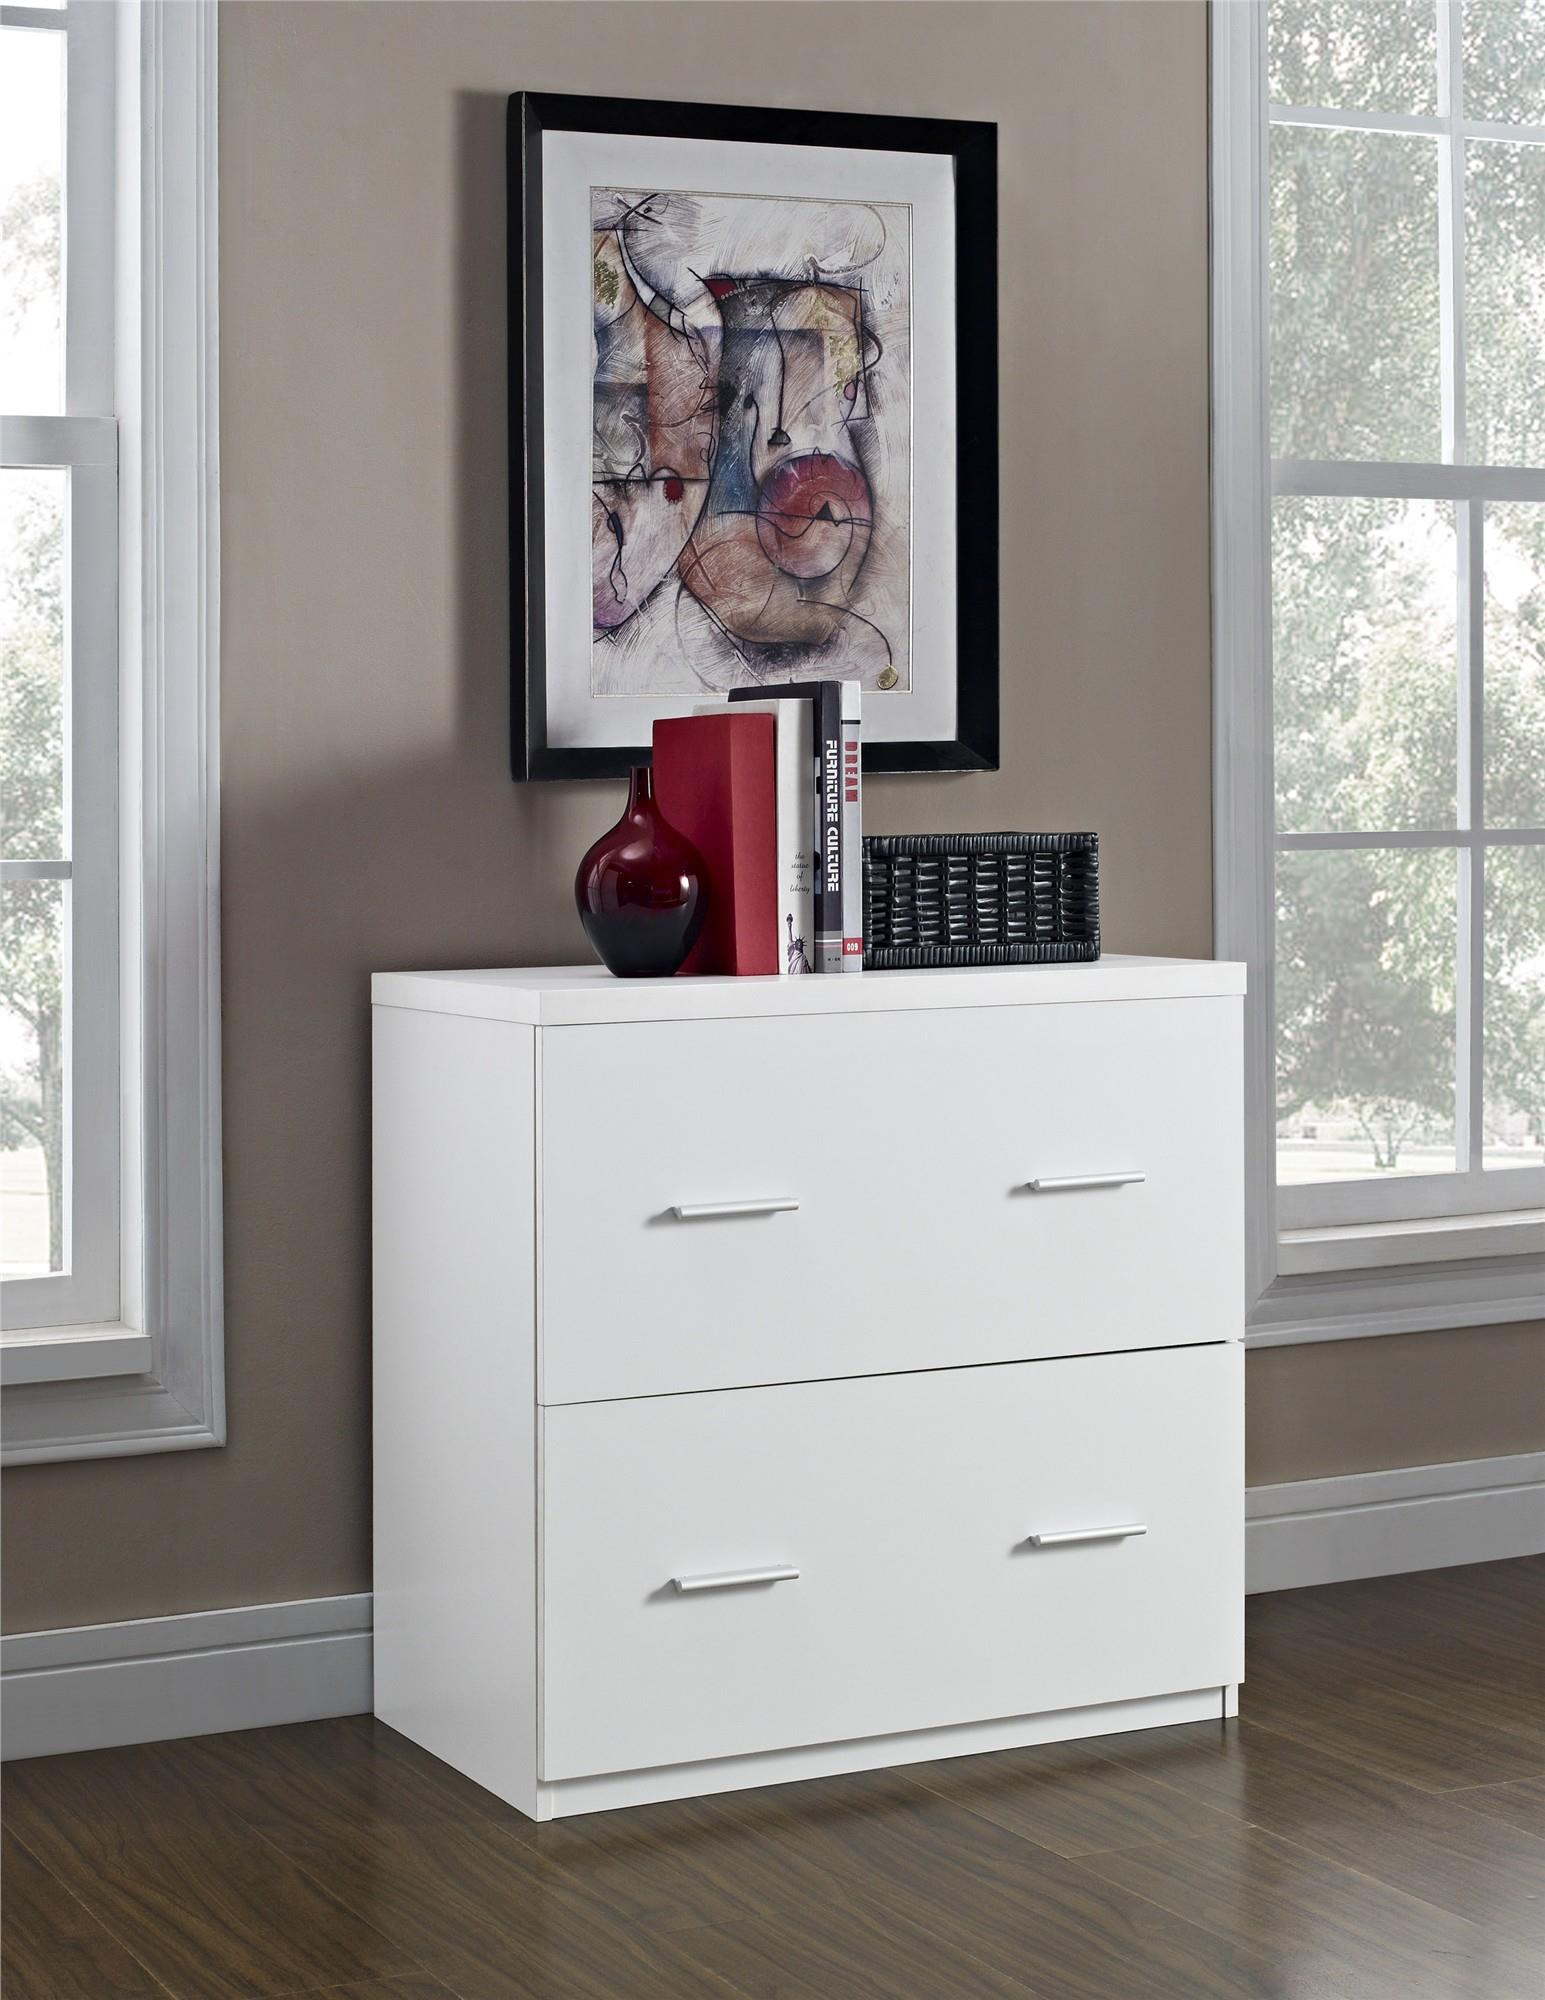 Altra Furniture Princeton 2 Drawer Lateral File Cabinet In Espresso    Walmart.com